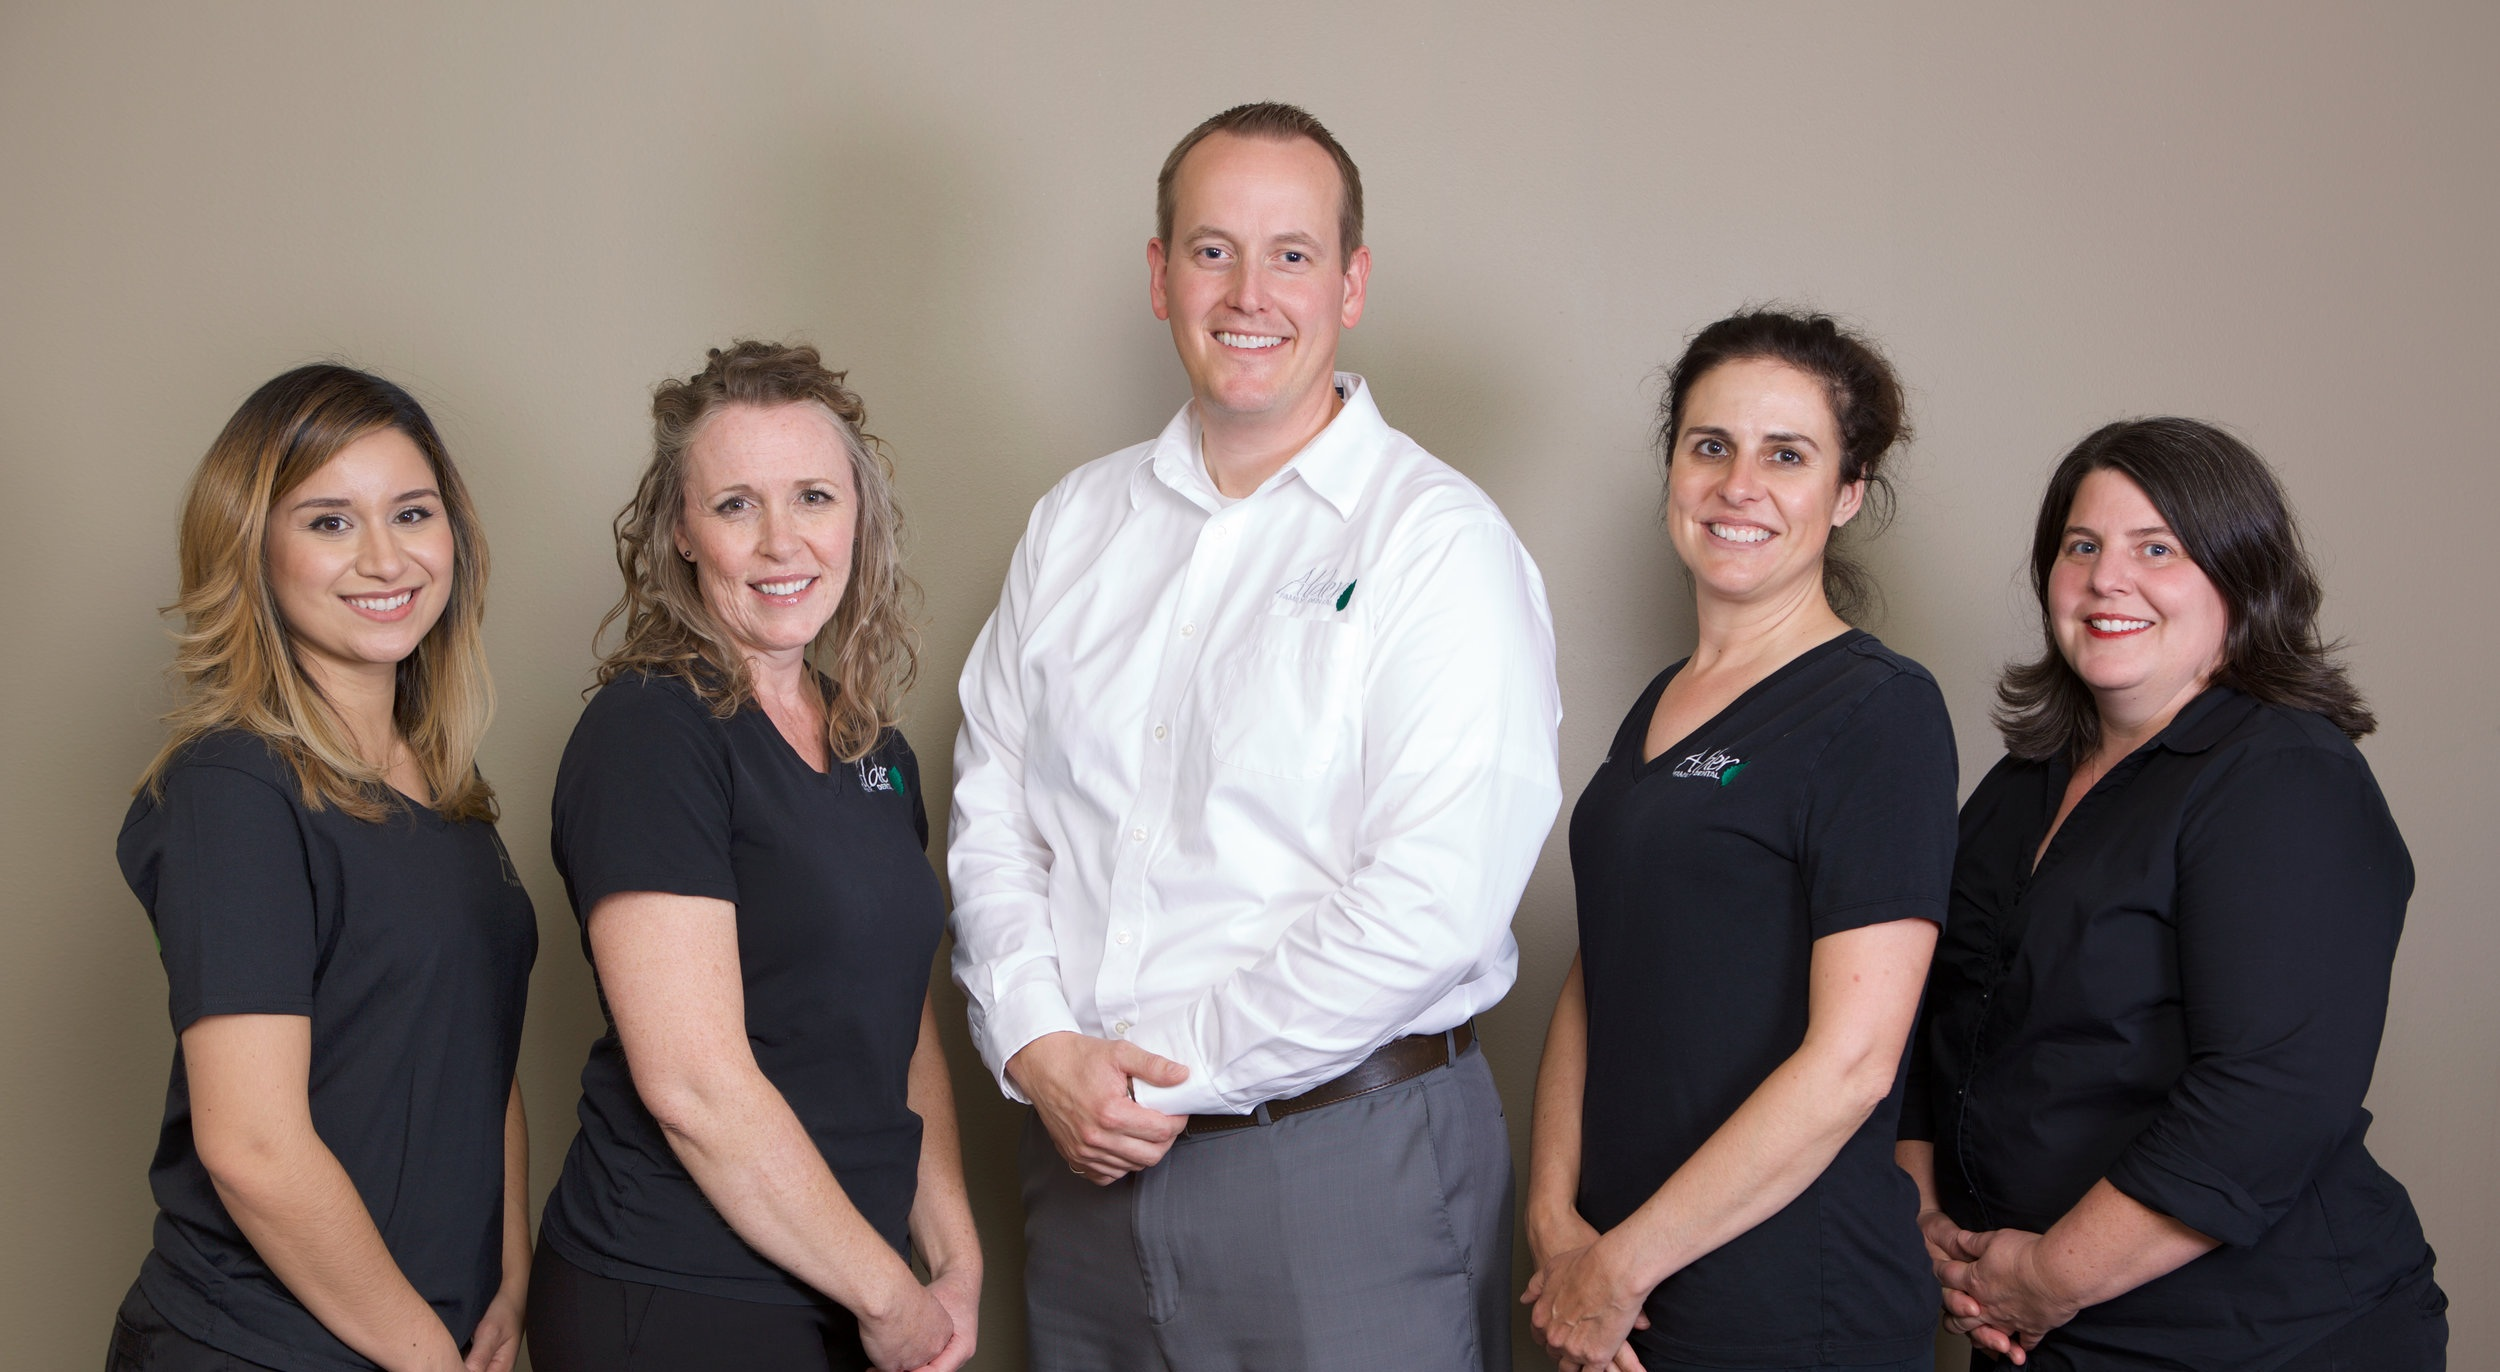 Hygienists - Julieta, Christy, Kent, Marchand, and Heather have a deep regard for their patients' overall health. They genuinely care for each and every one of their patients.